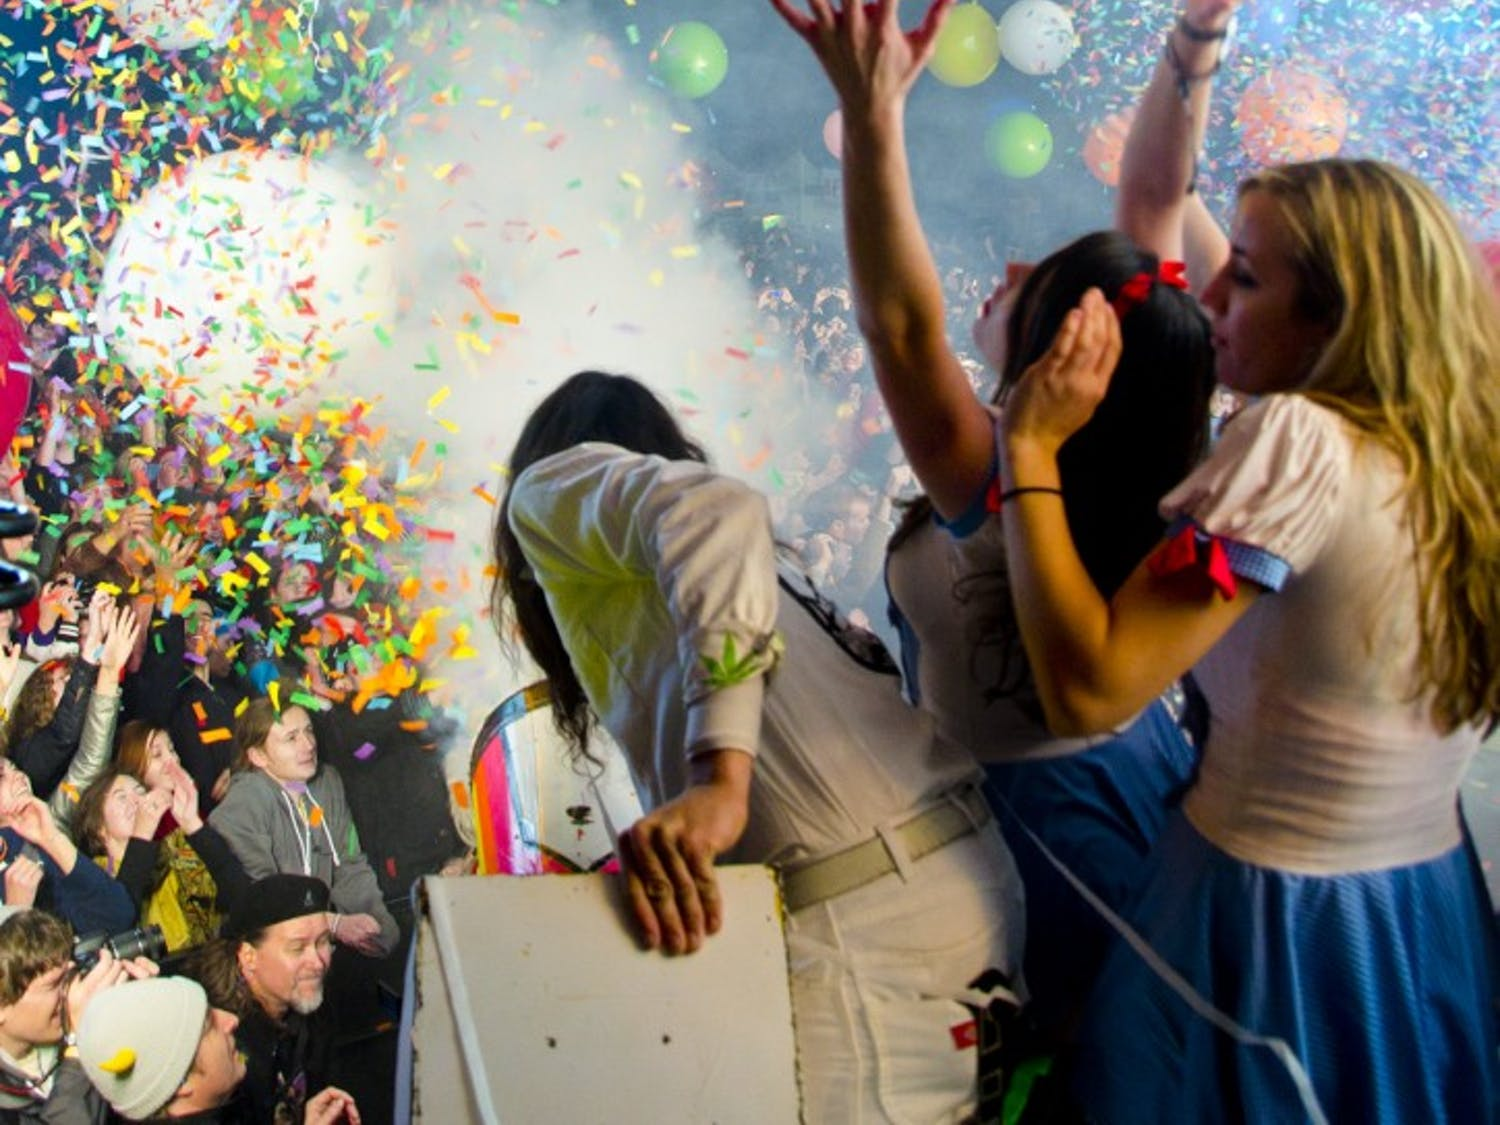 A member of the Flaming Lip's production crew aims a confetti cannon above the crowd at Moogfest 2011.